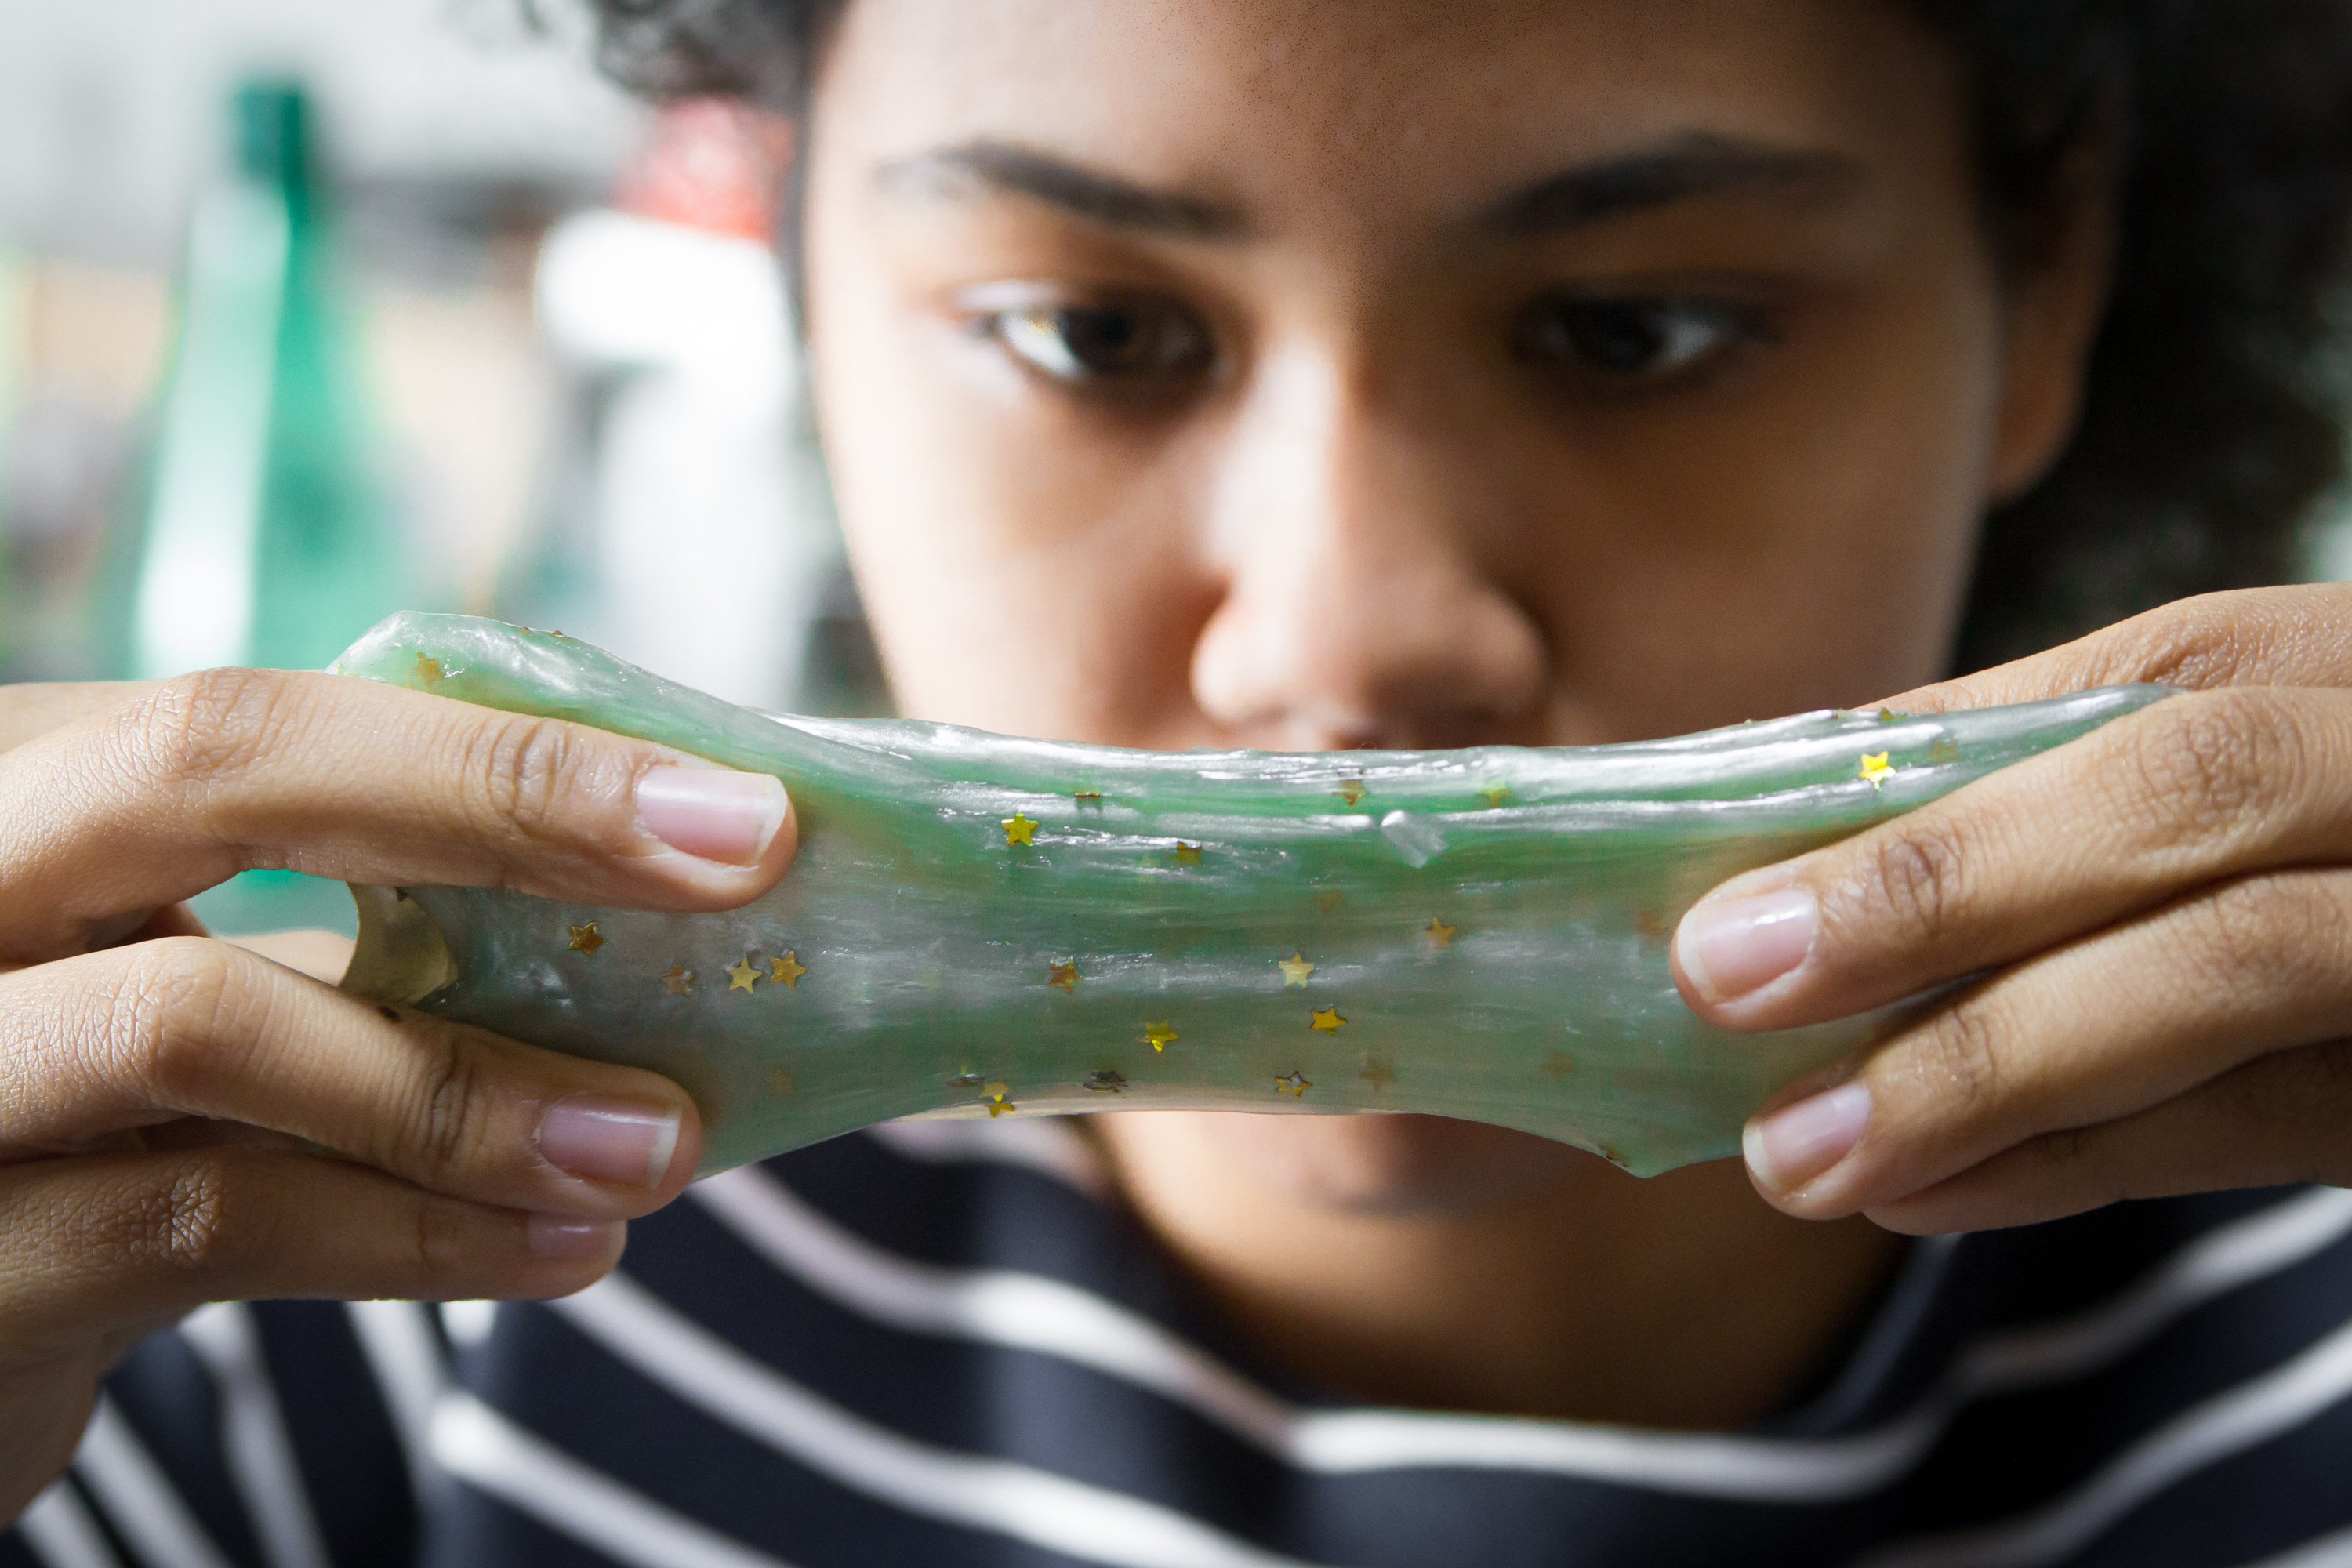 A girl looks intently at a glittery and stretched piece of slime she is stretching between her hands.